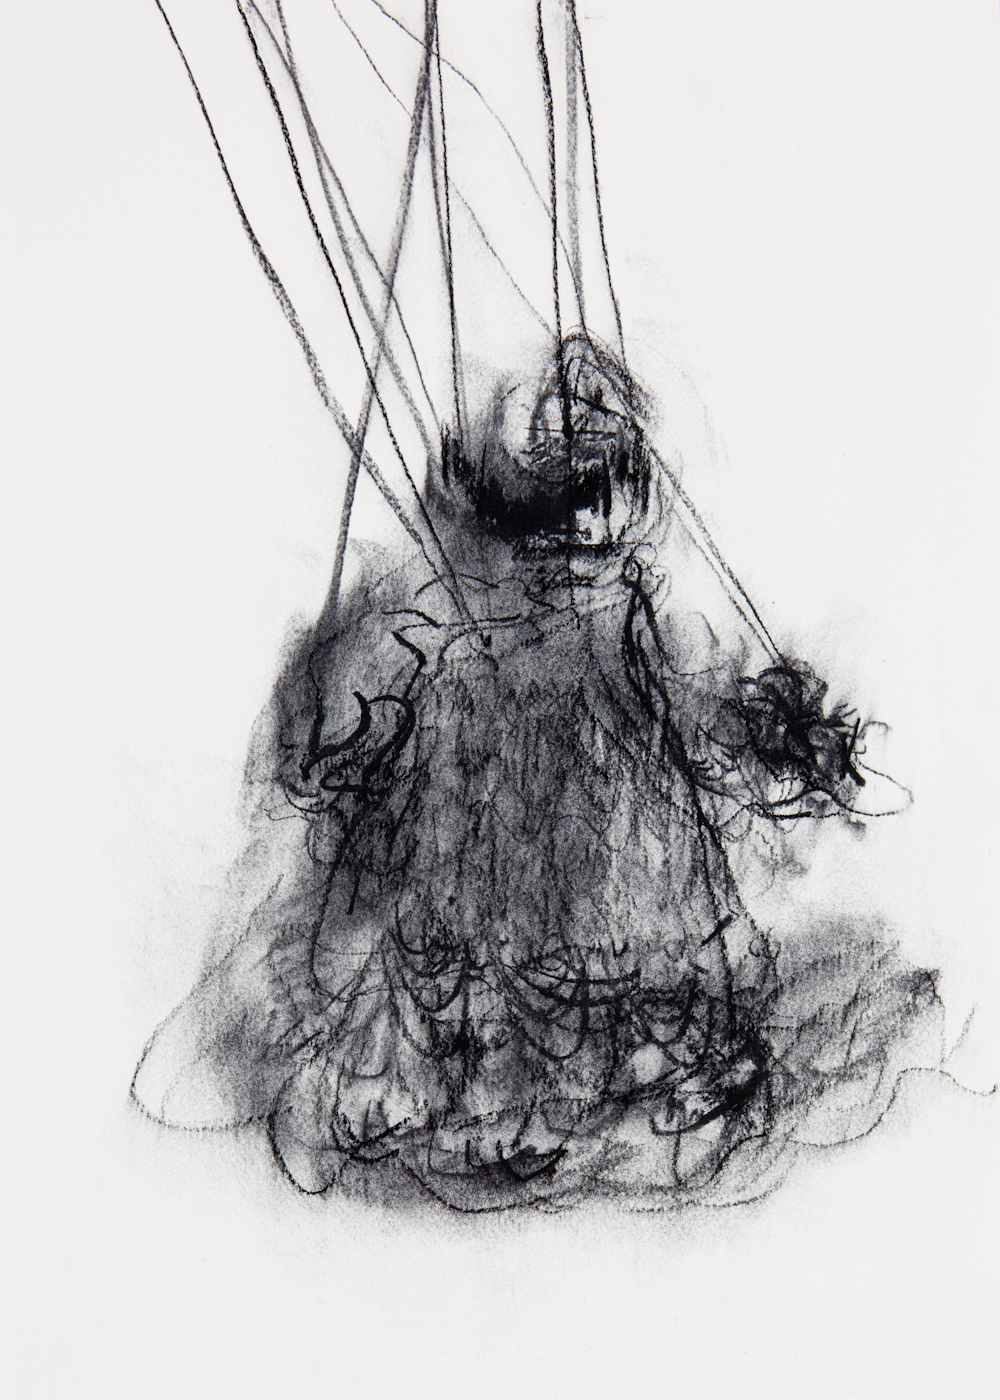 36x51cm – charcoal on paper – 2015